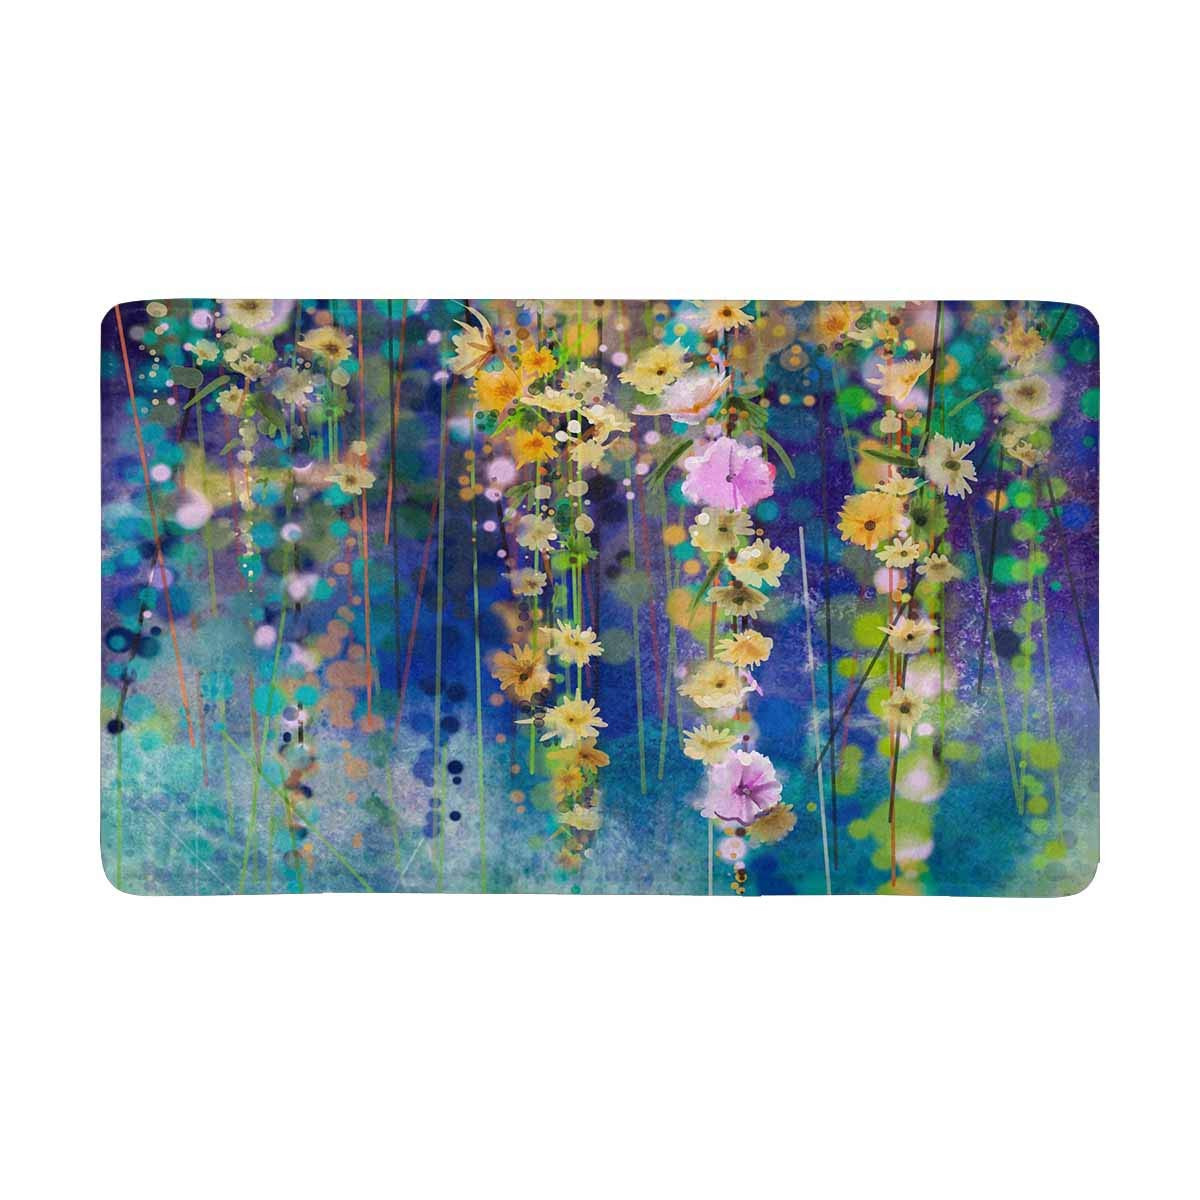 MKHERT Abstract Floral Watercolor Painting Spring Flower Doormat Rug Home Decor Floor Mat Bath Mat 30x18 inch